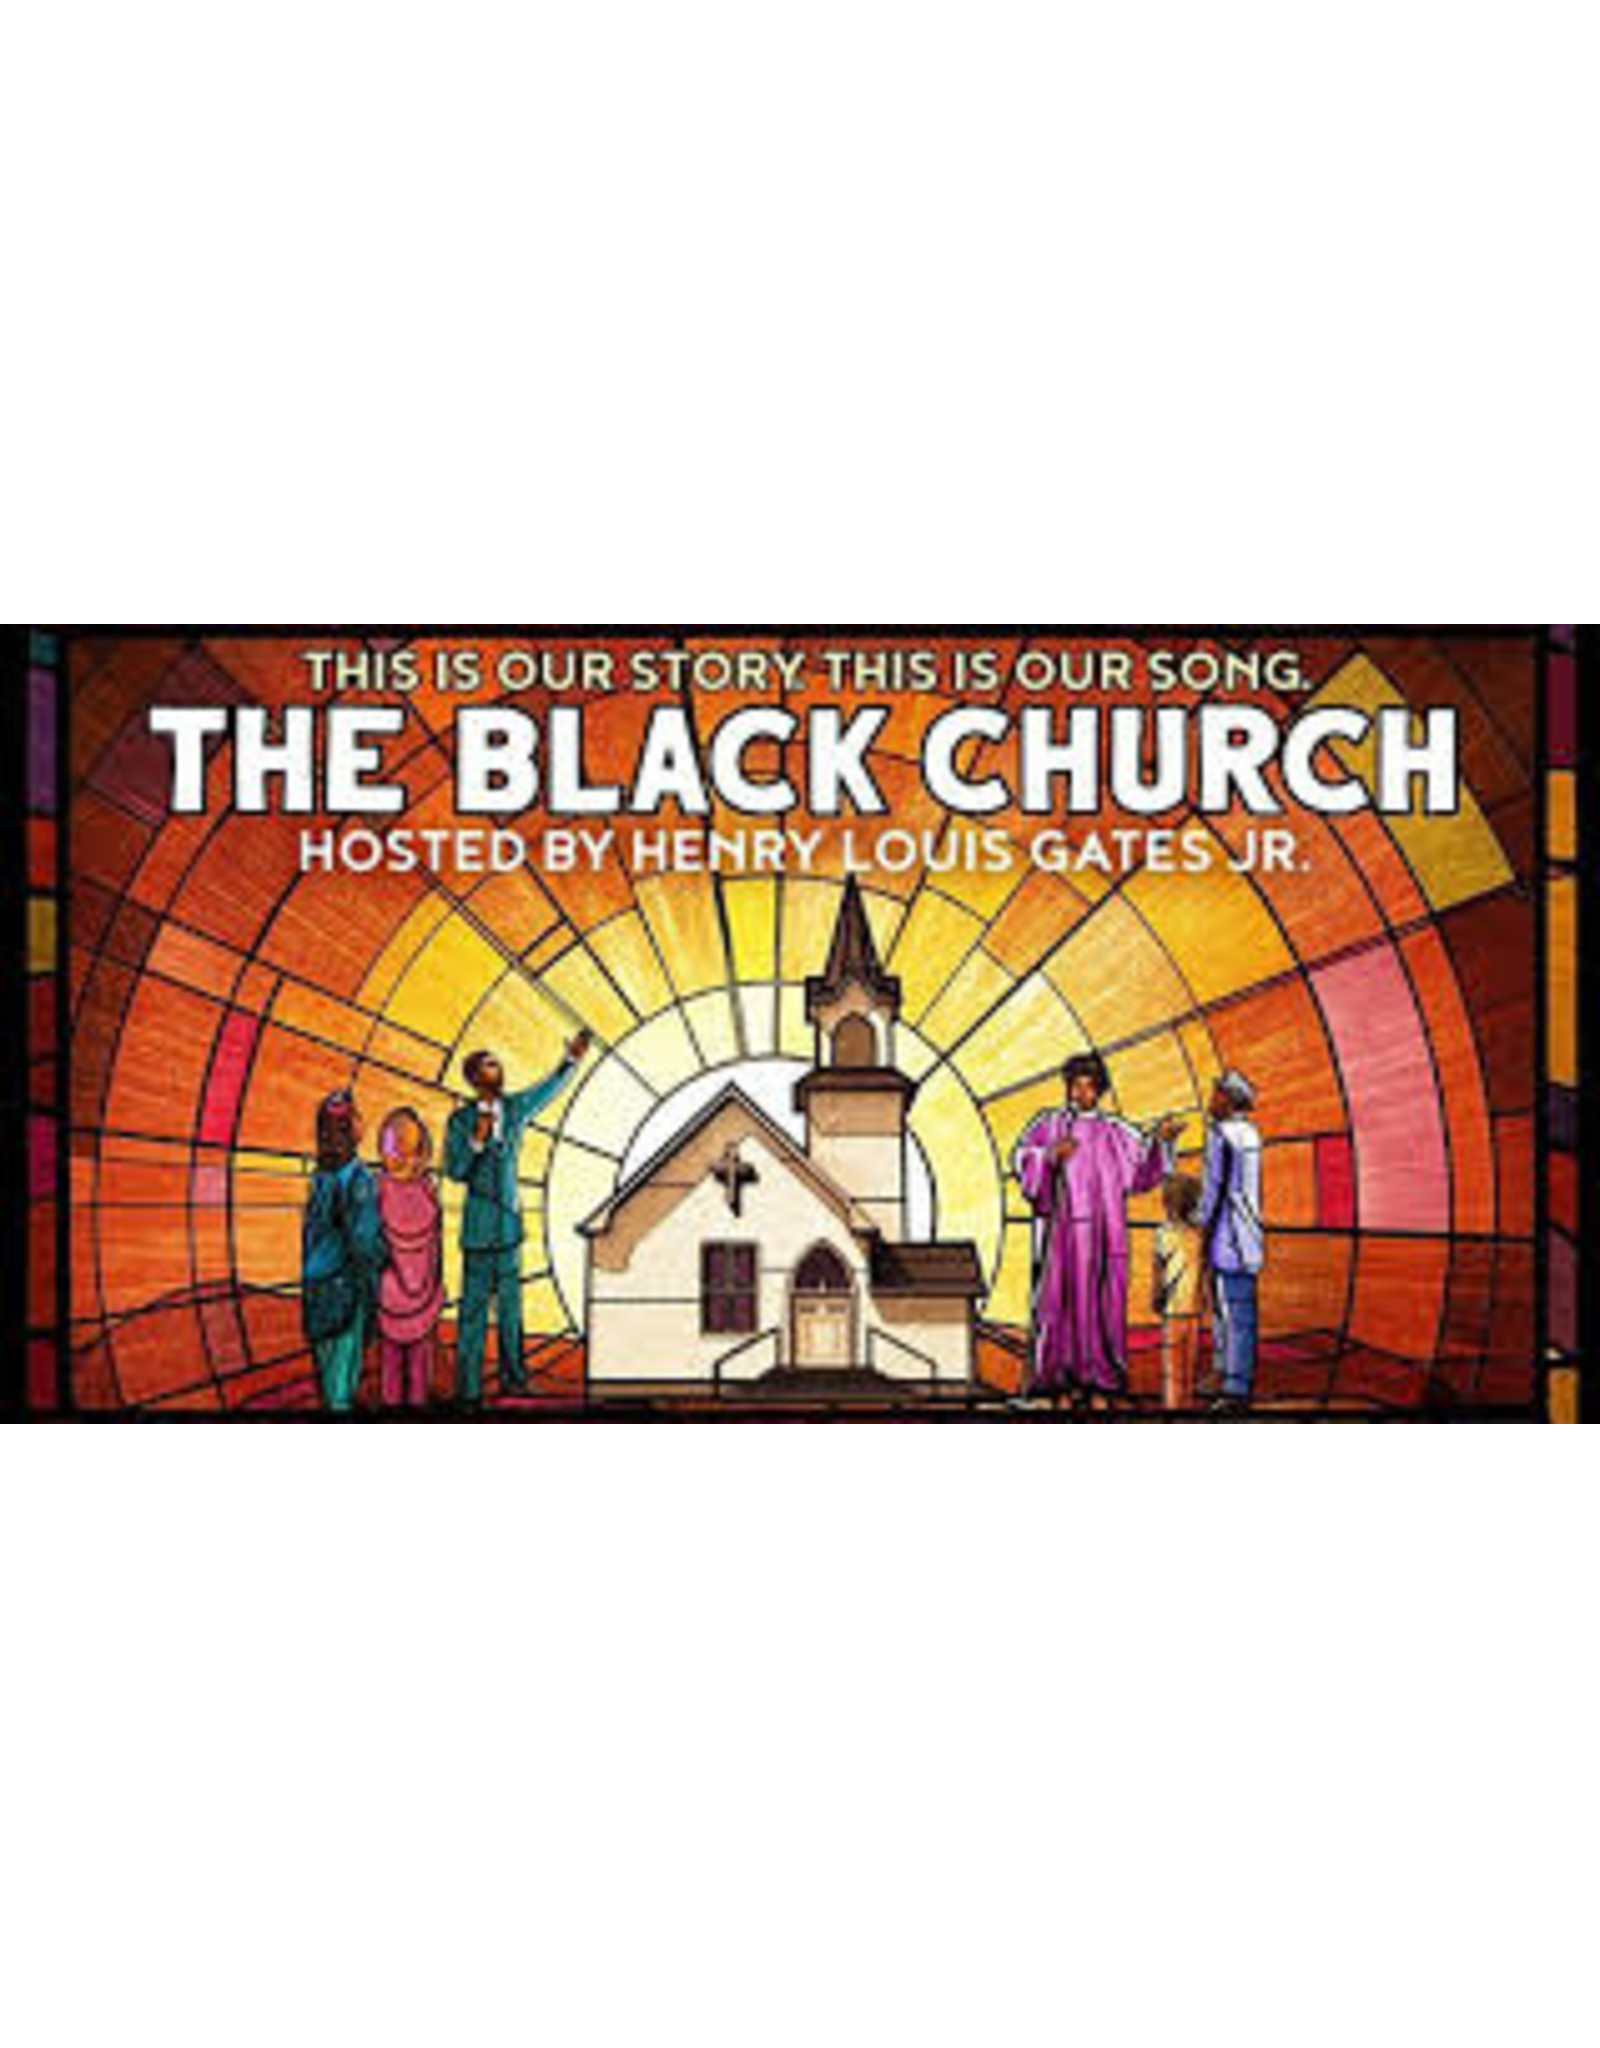 Books The Black Church: This is Our Story, This is Our Song by Henry Louis Gates, Jr. (Signed Copies)